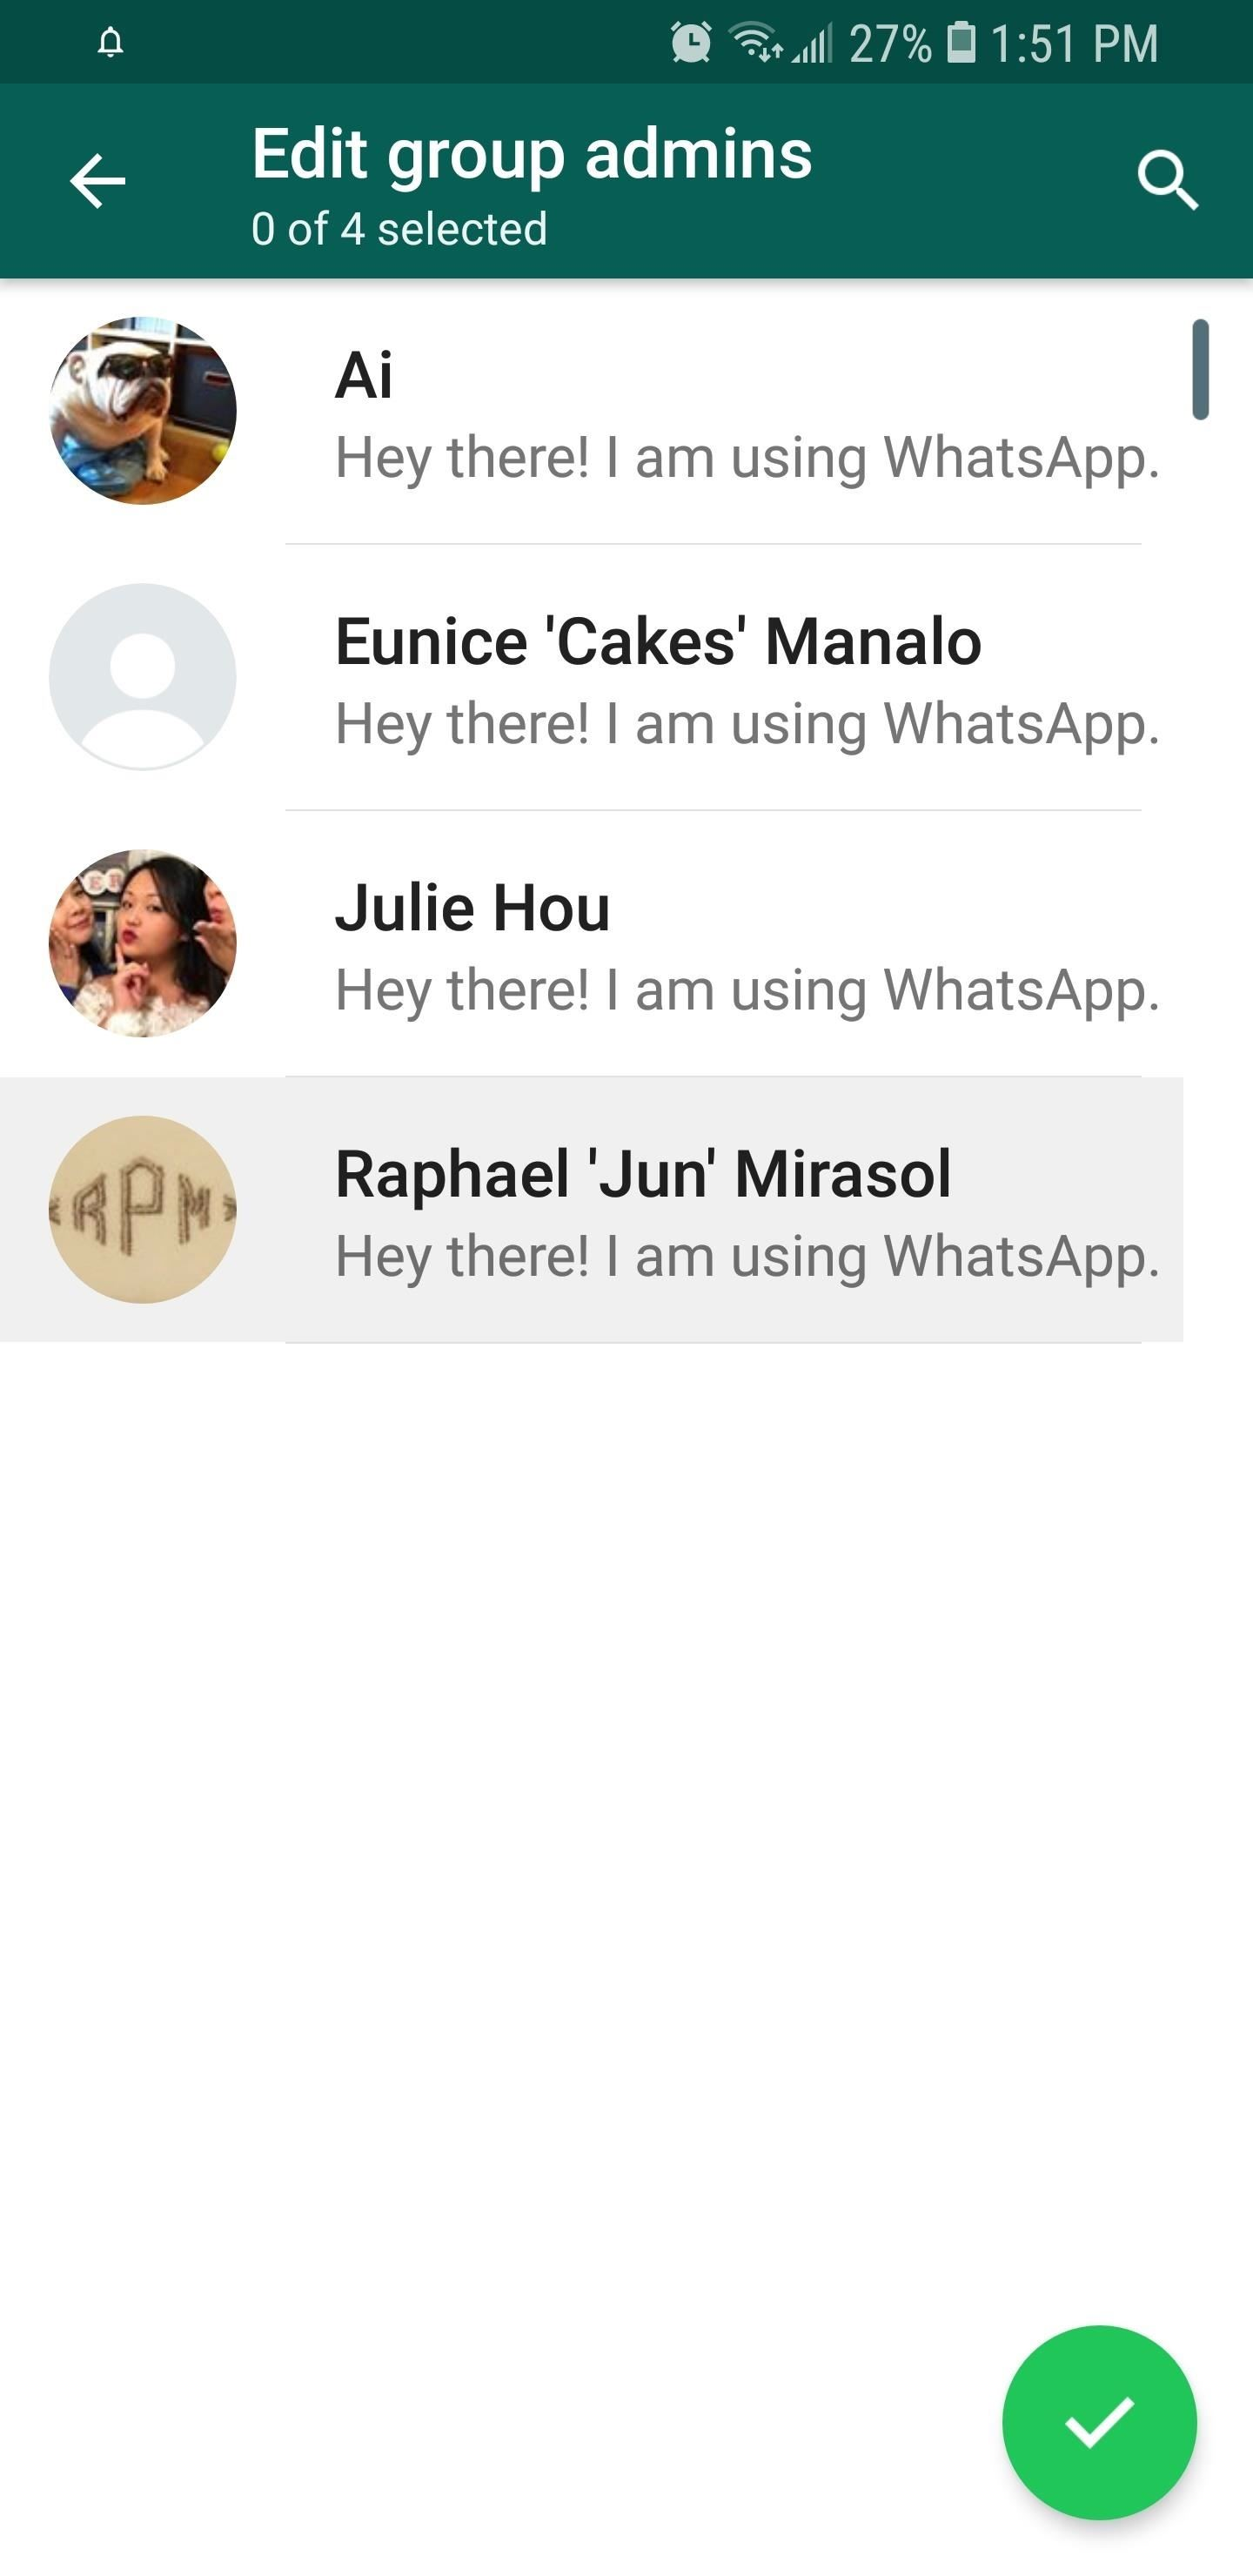 How to Add Descriptions to WhatsApp Group Chats to Coordinate Discussions Better